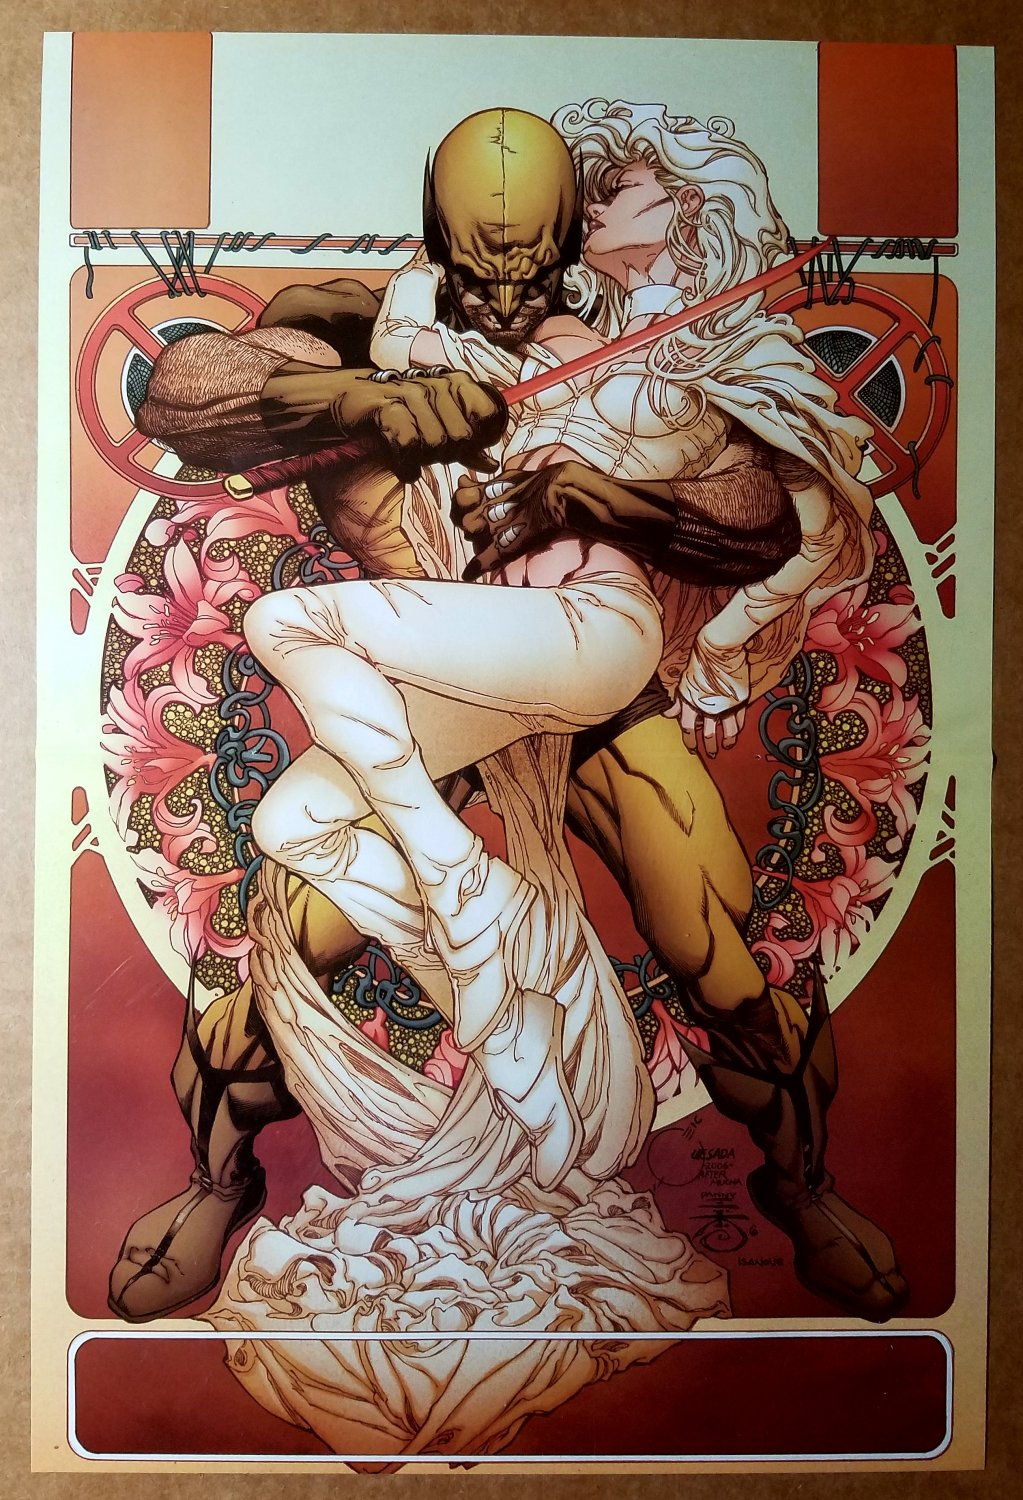 Wolverine Emma Frost Marvel Comics Poster by Joe Quesada